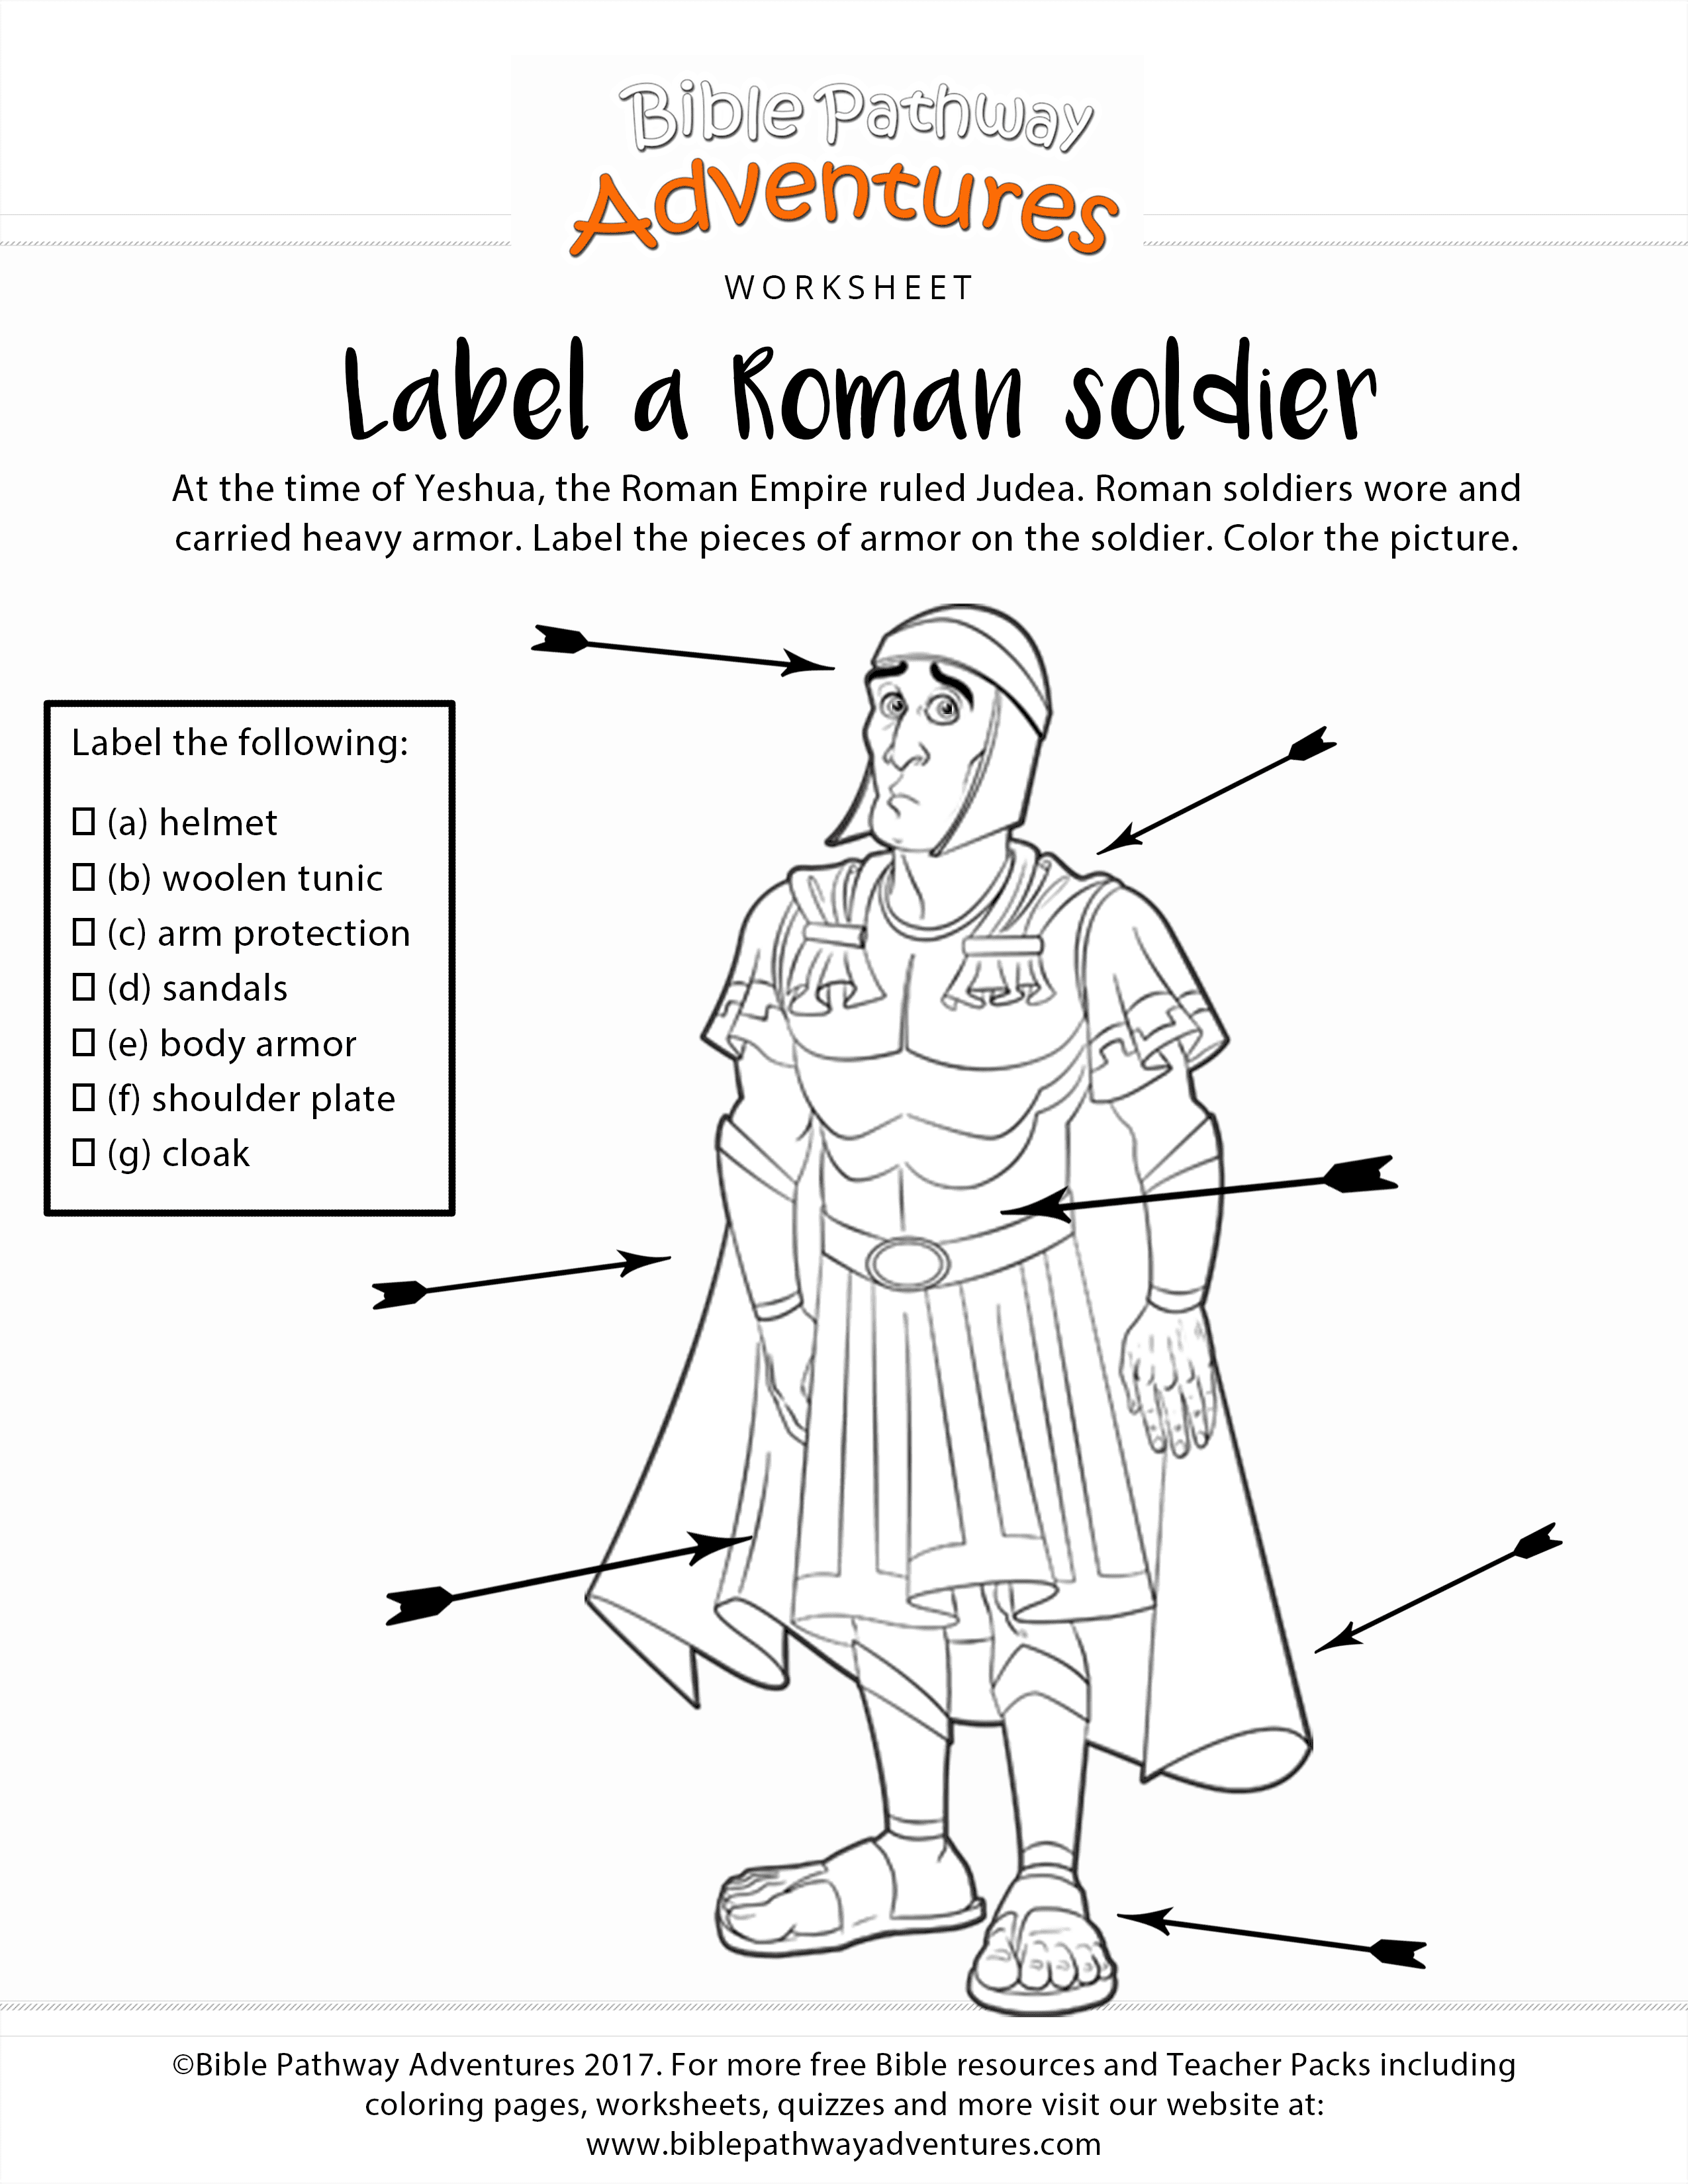 Worksheets Roman Empire Worksheet label a roman soldier worksheet coloring page free download and worksheet